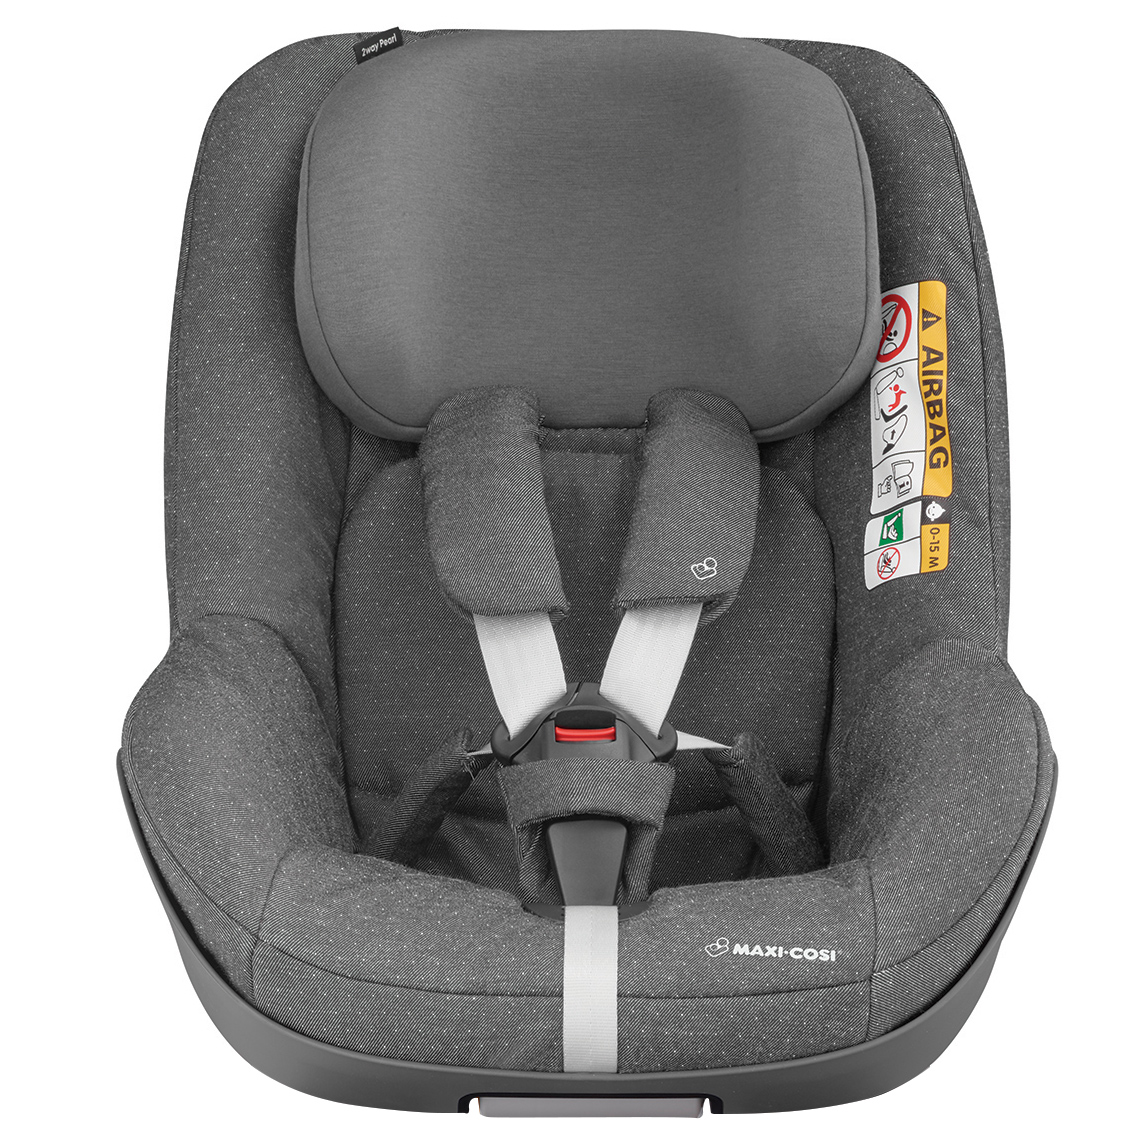 maxi cosi safety seat 2way pearl 2018 sparkling grey buy at kidsroom car seats. Black Bedroom Furniture Sets. Home Design Ideas